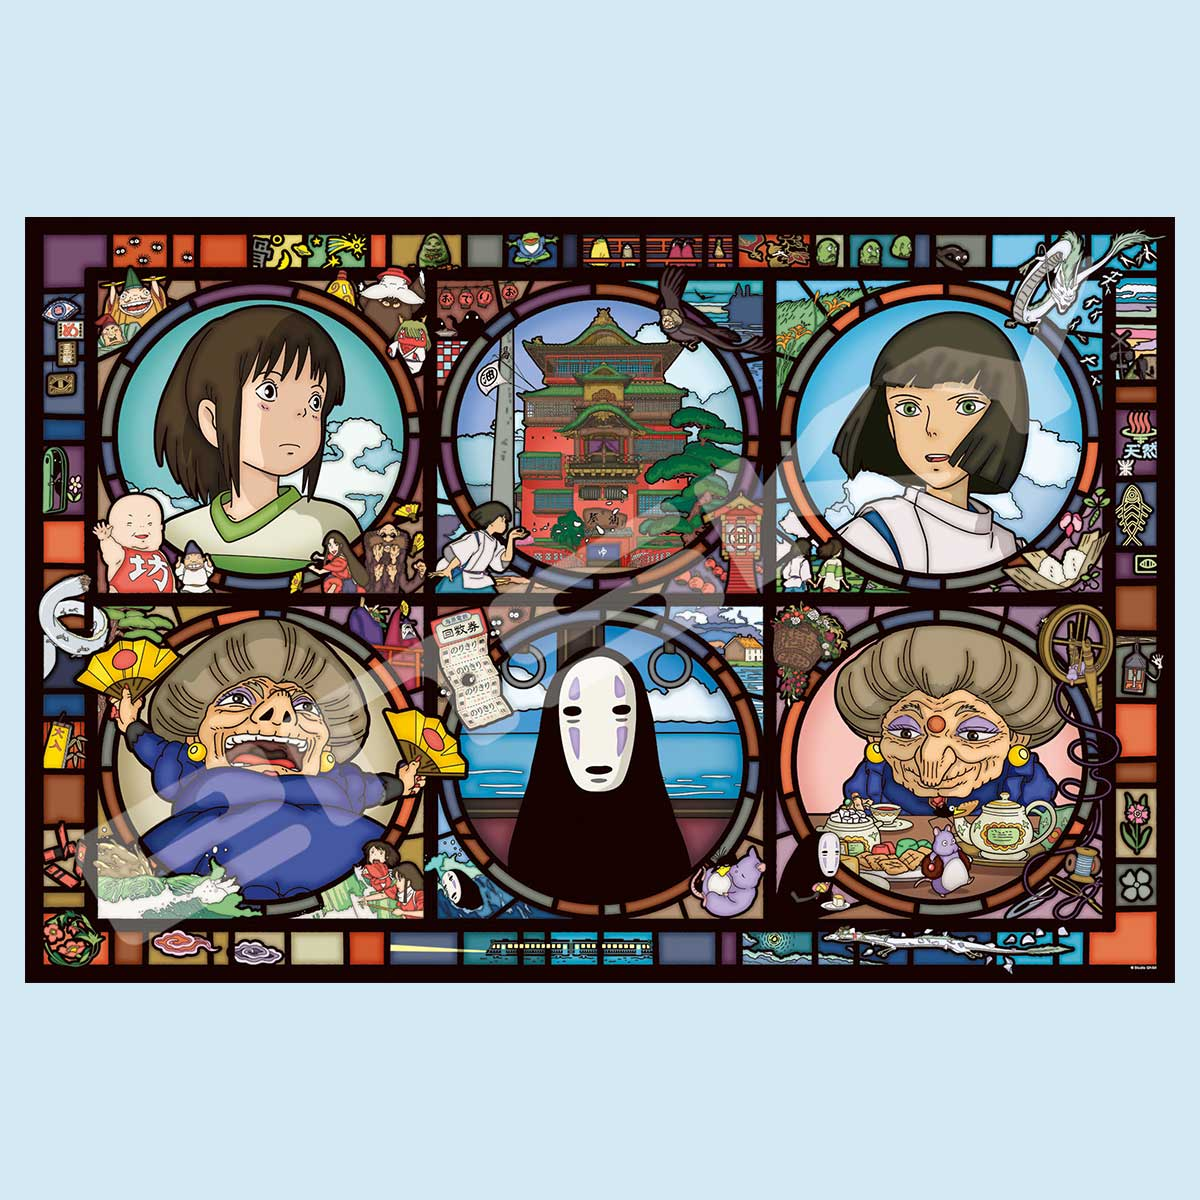 Ensky Puzzle News from a Mysterious Town Spirited Away Artcrystal Puzzle (1000-AC016)